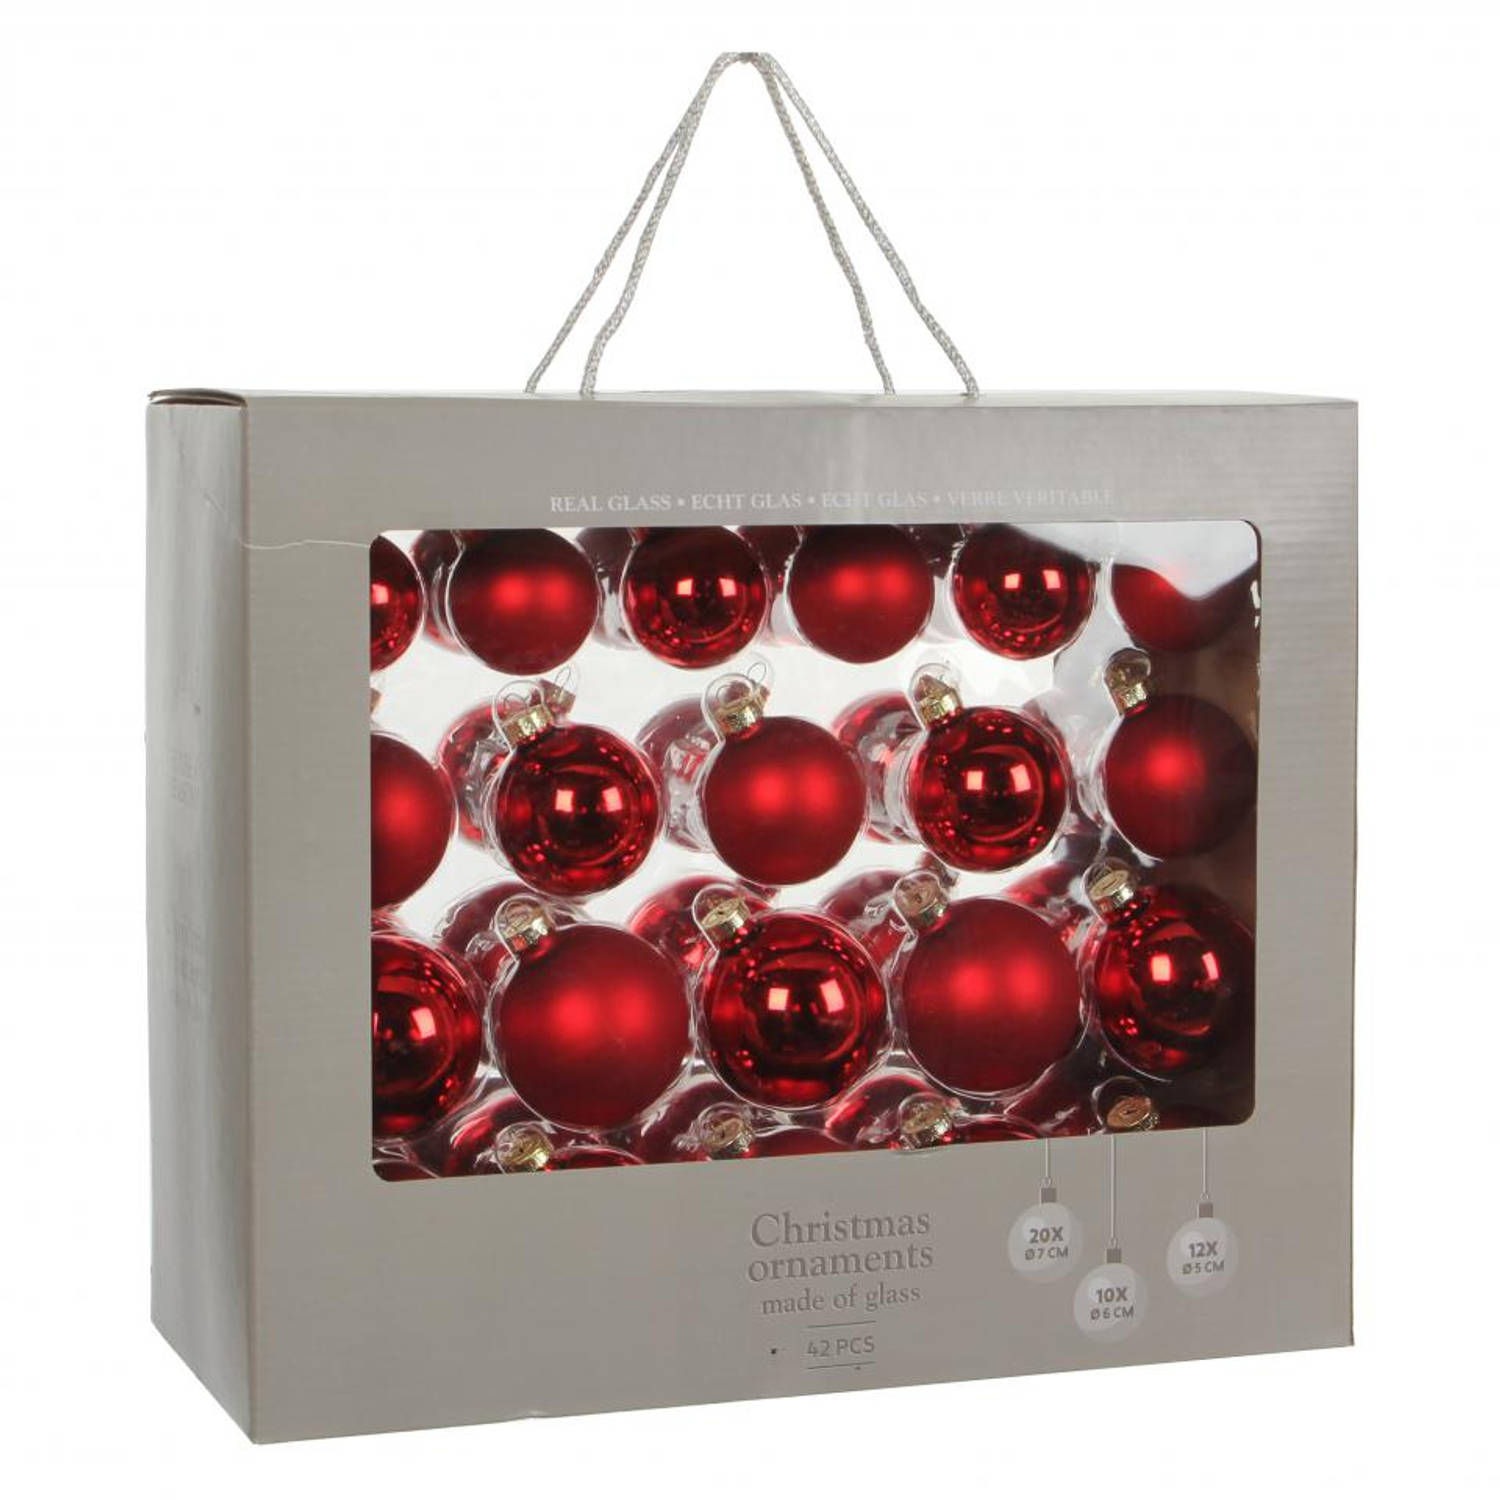 House of seasons ornament kerstbal - rood - 42 stuks